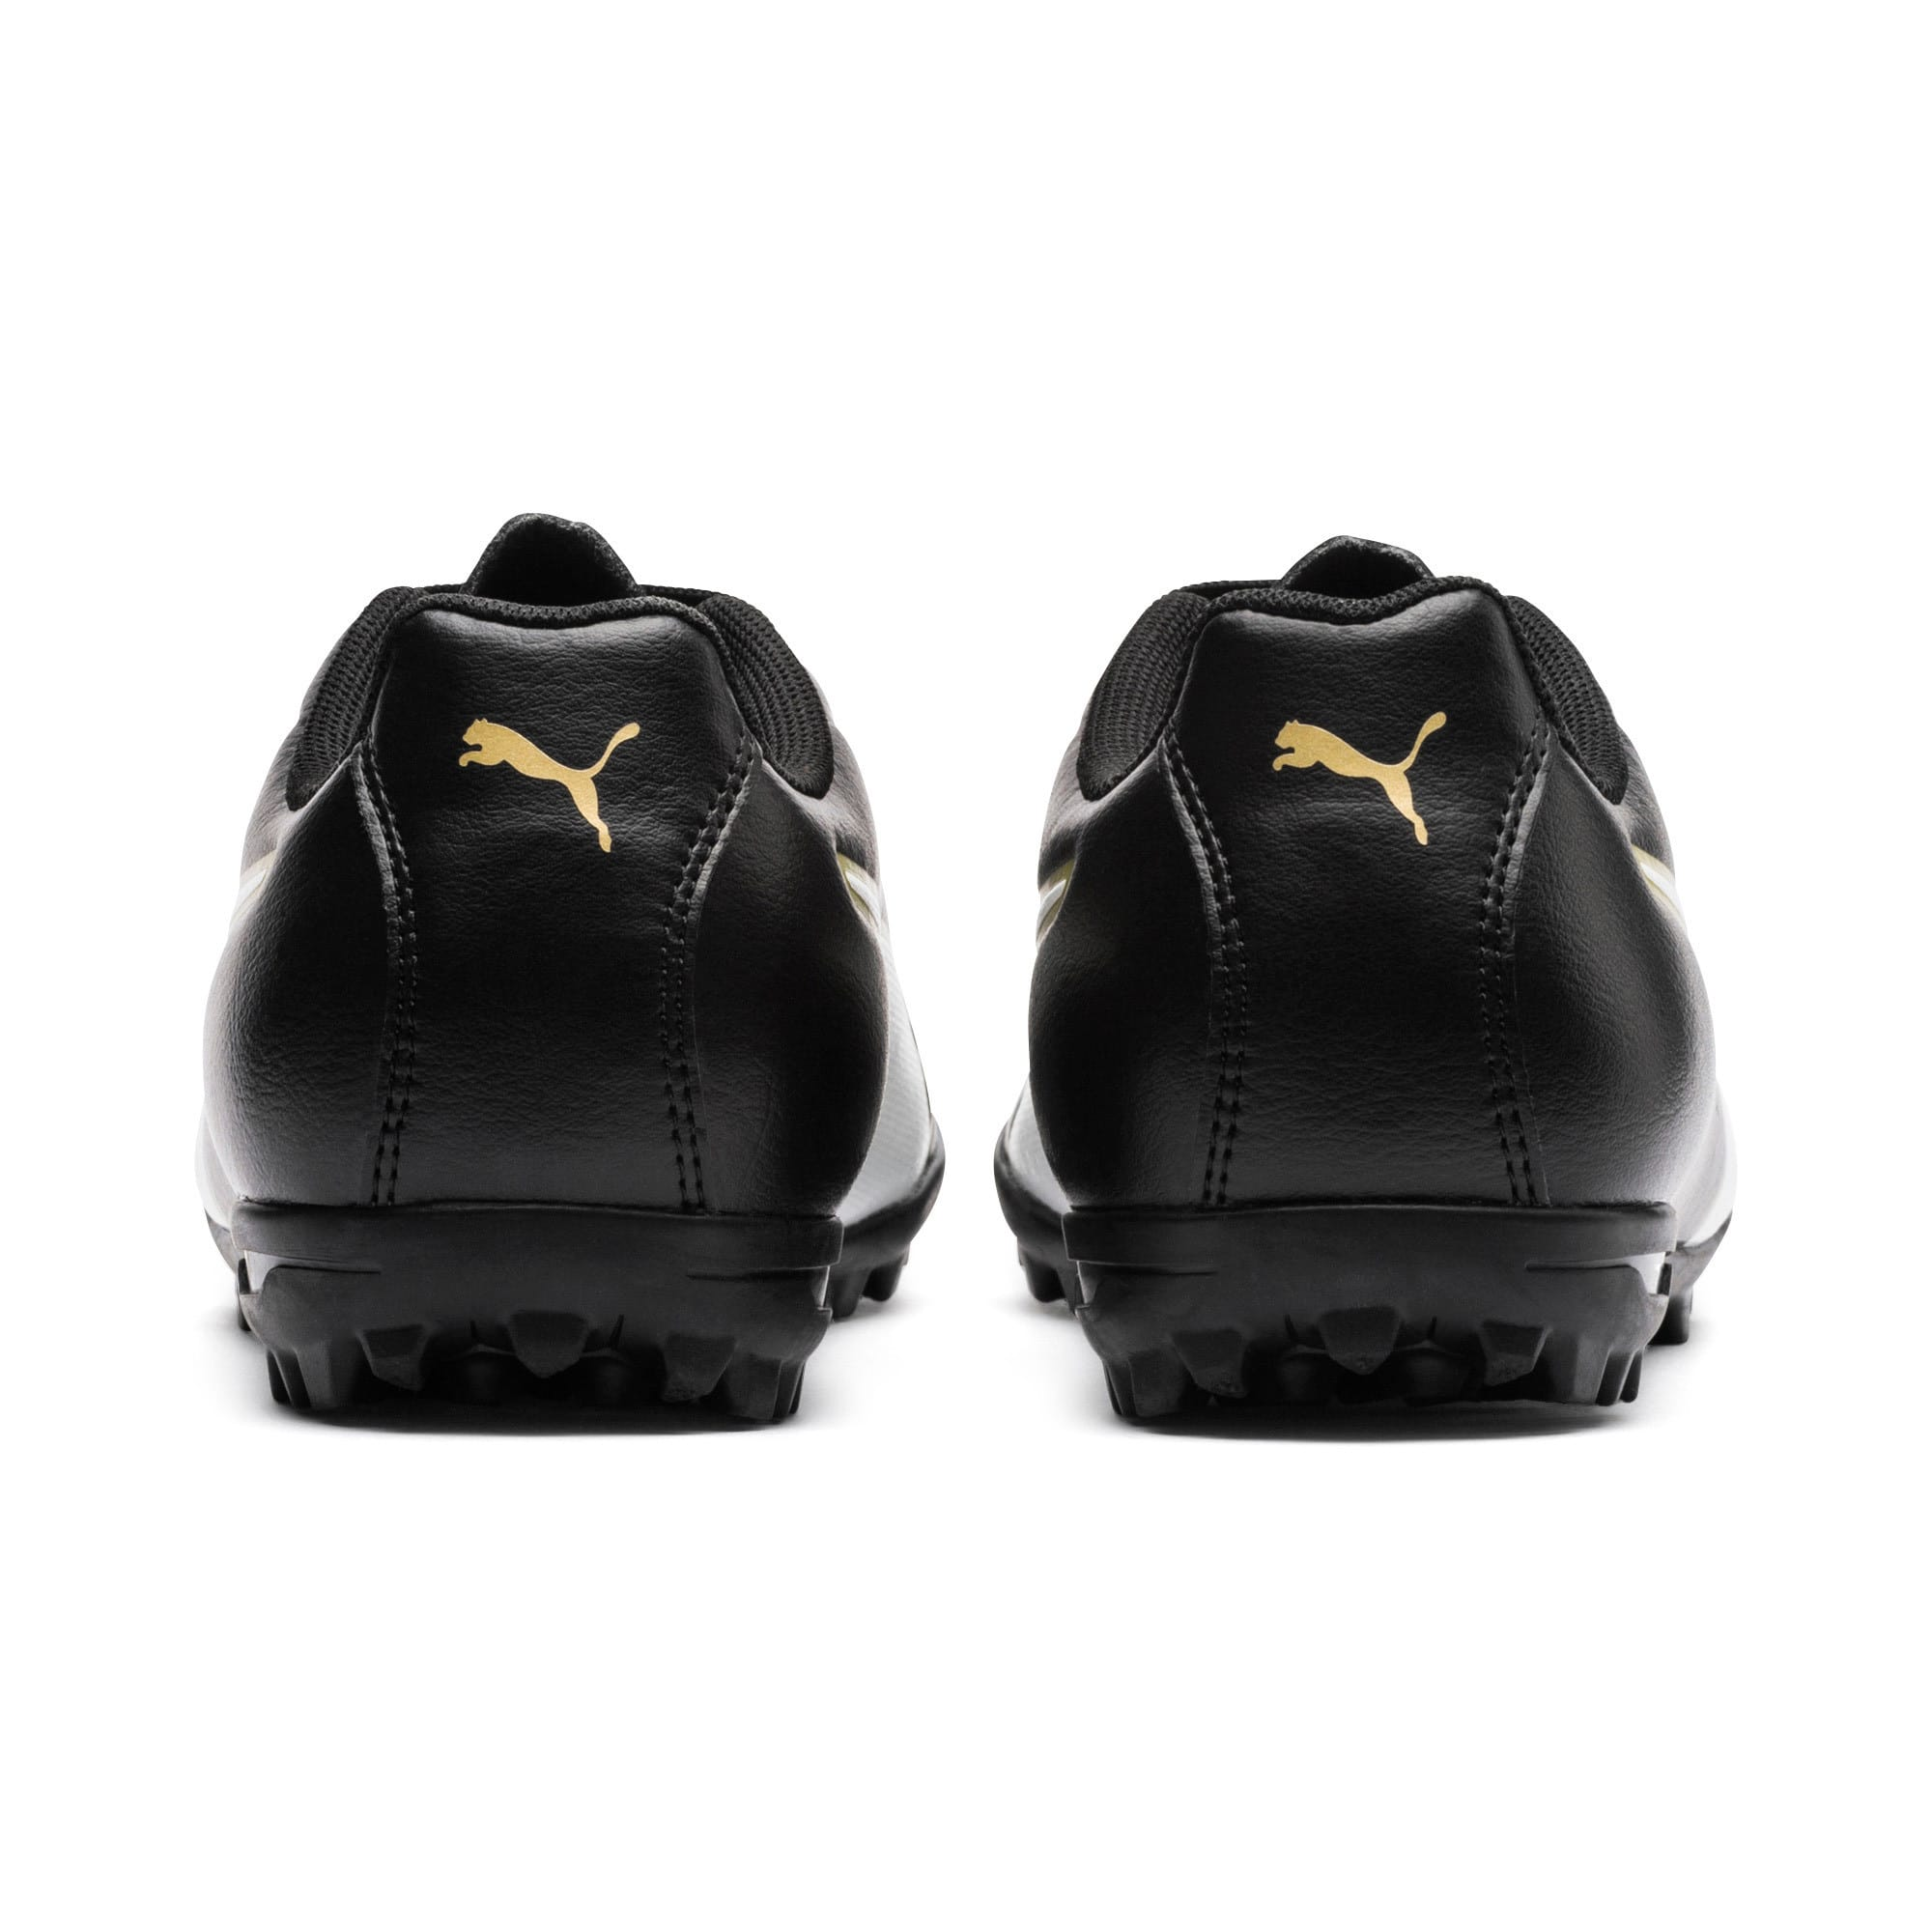 Thumbnail 3 of Classico C II TT Youth Football Boots, Black-White-Gold, medium-IND